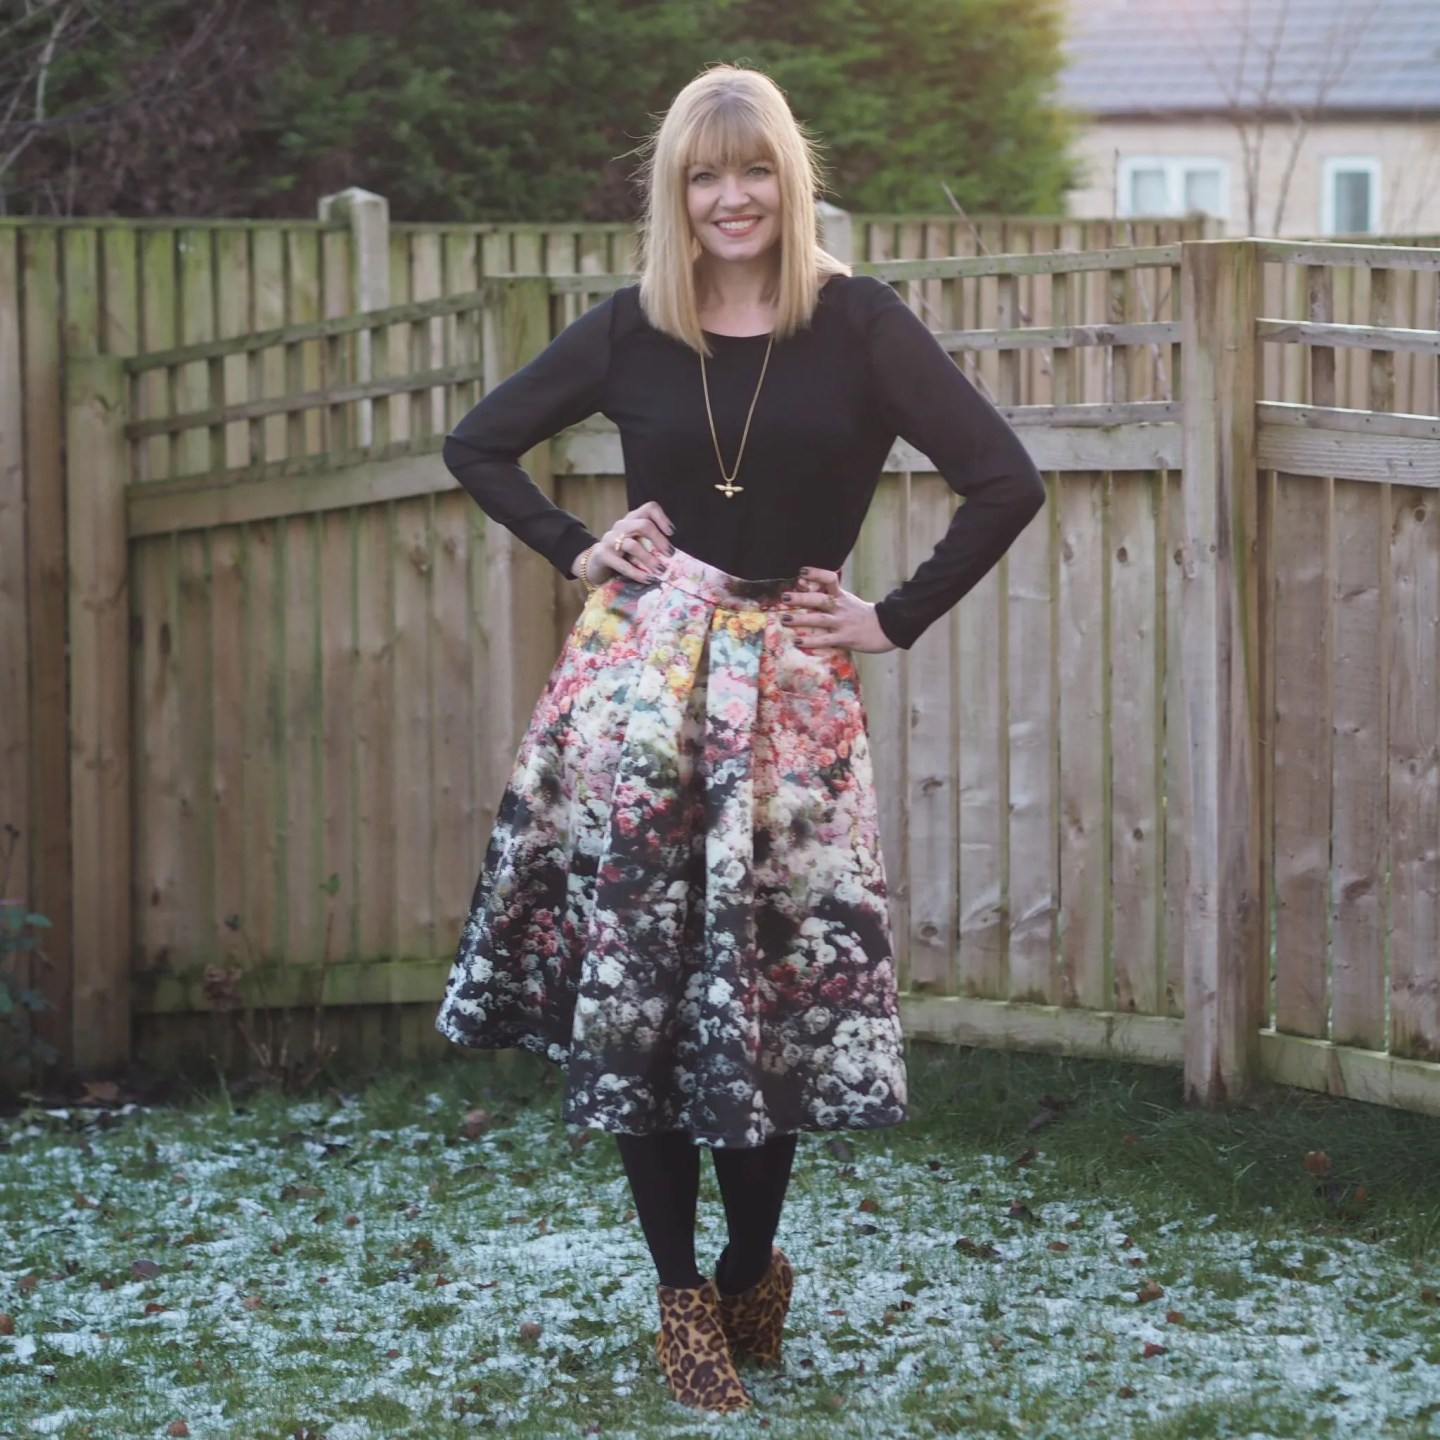 what-lizzy-loves-how-to-style-high-heeled-ankle-boots-midi-skirt